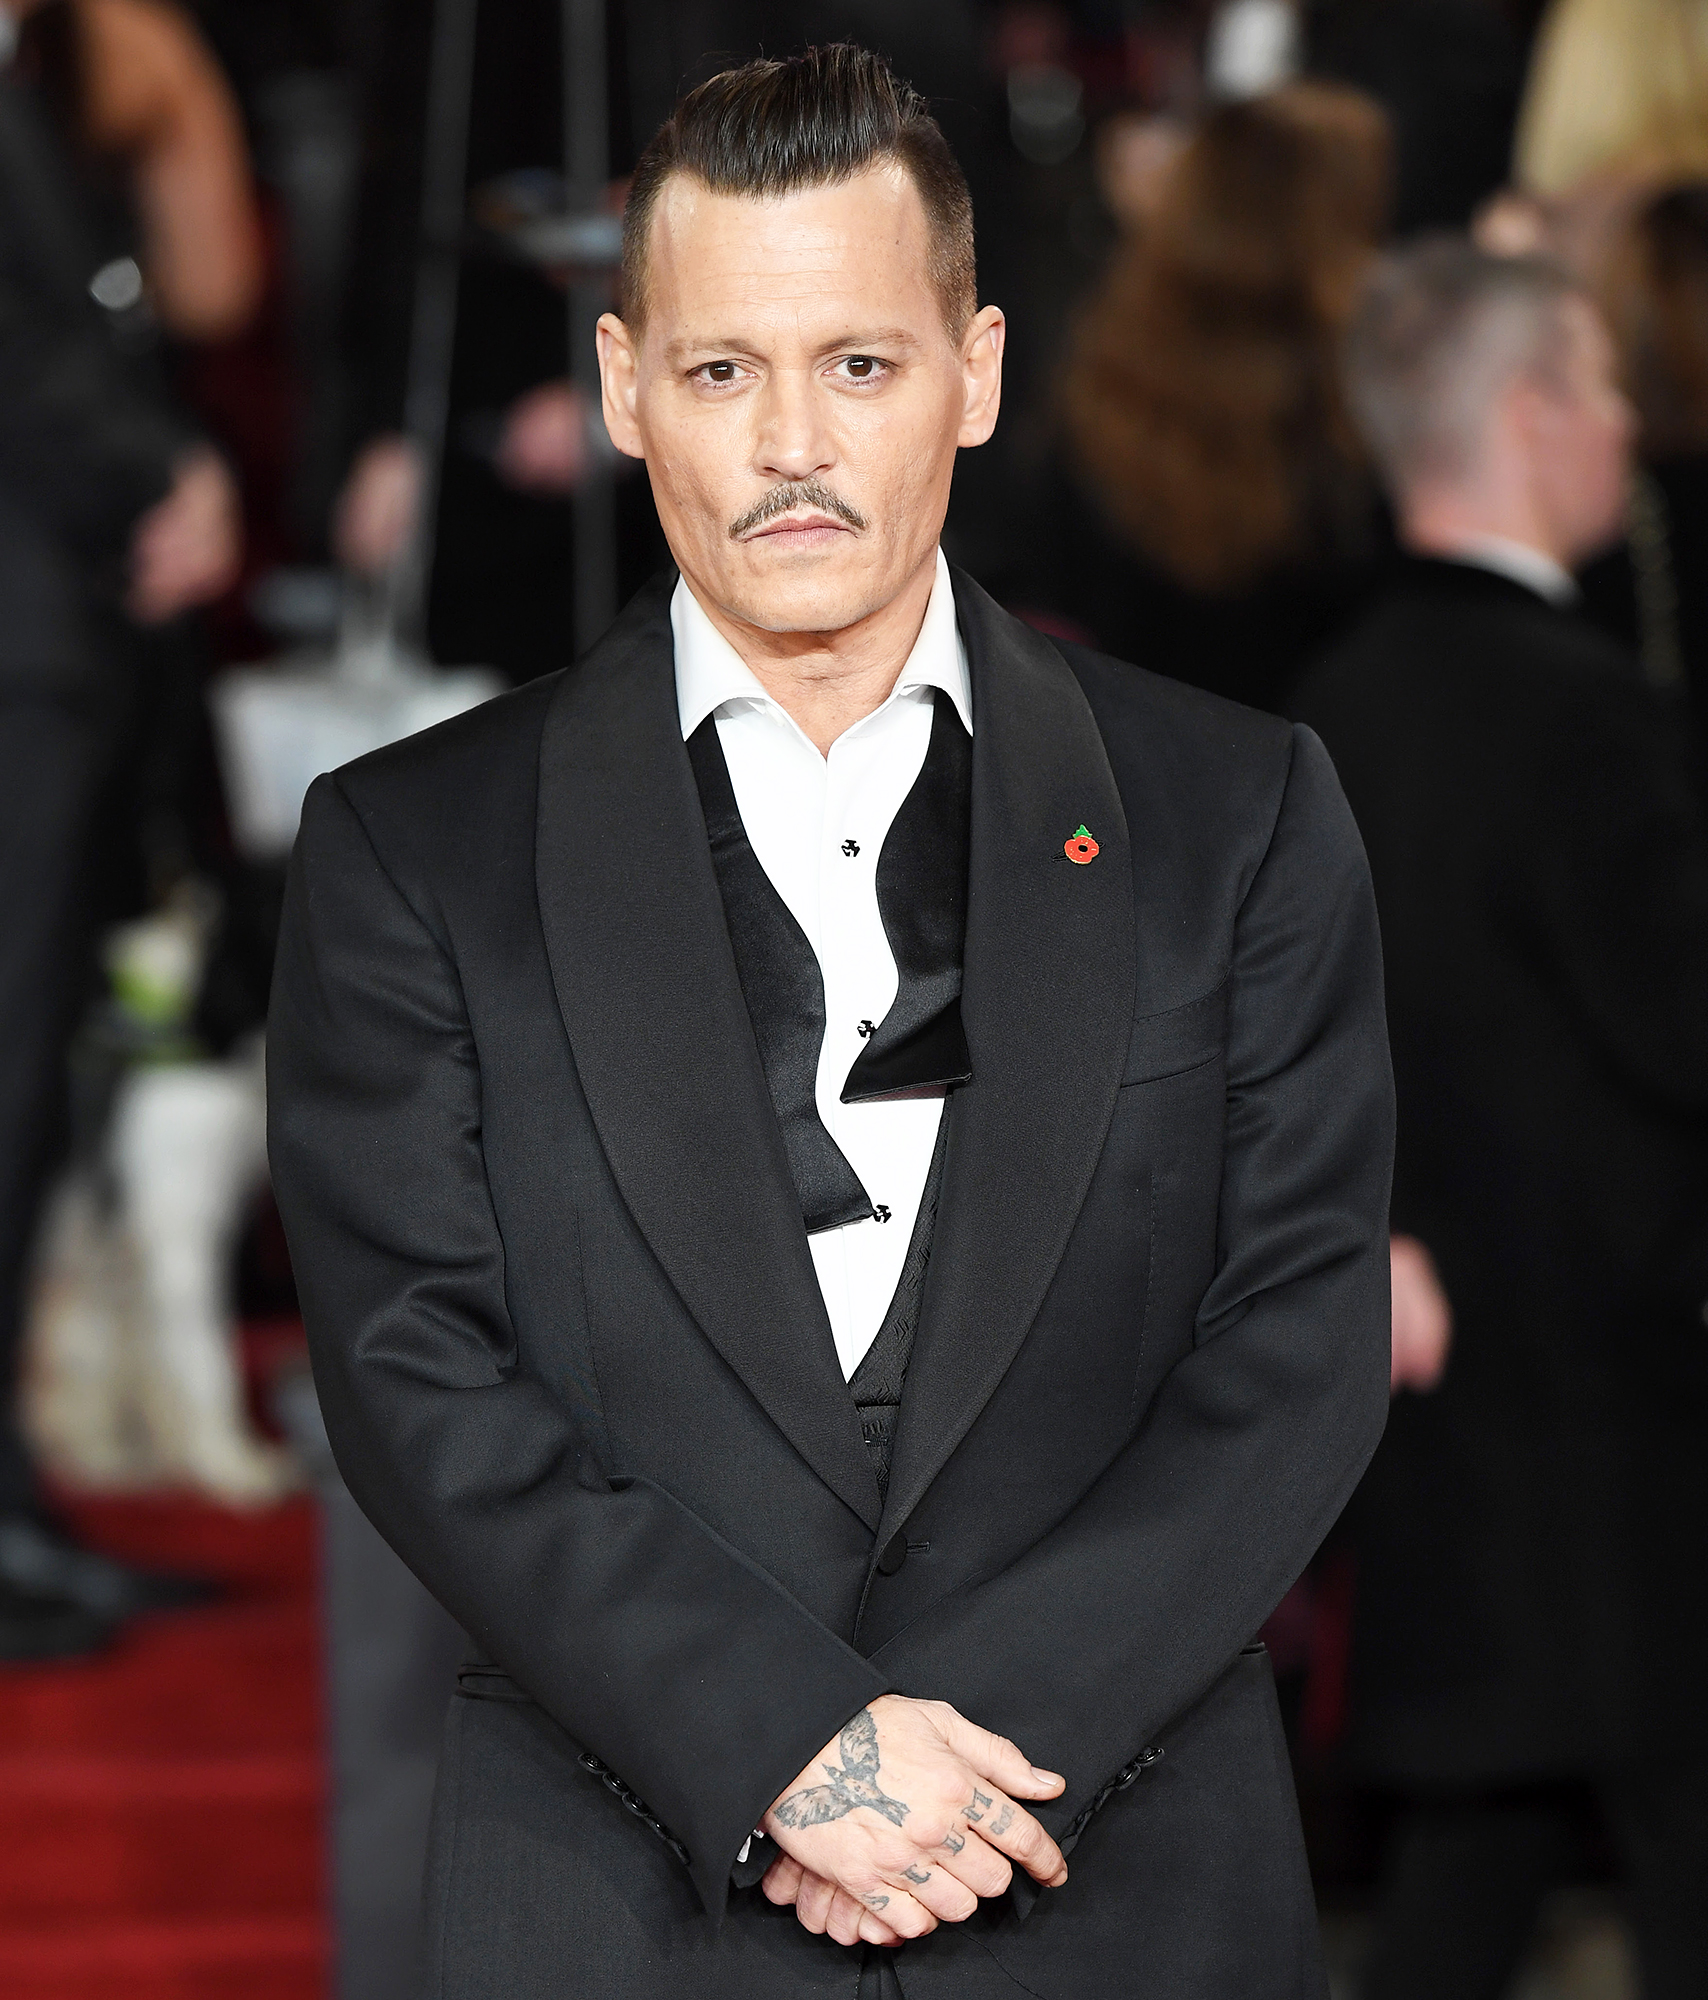 Director Defends Johnny Depp After Actor Allegedly Attacked Crew Member